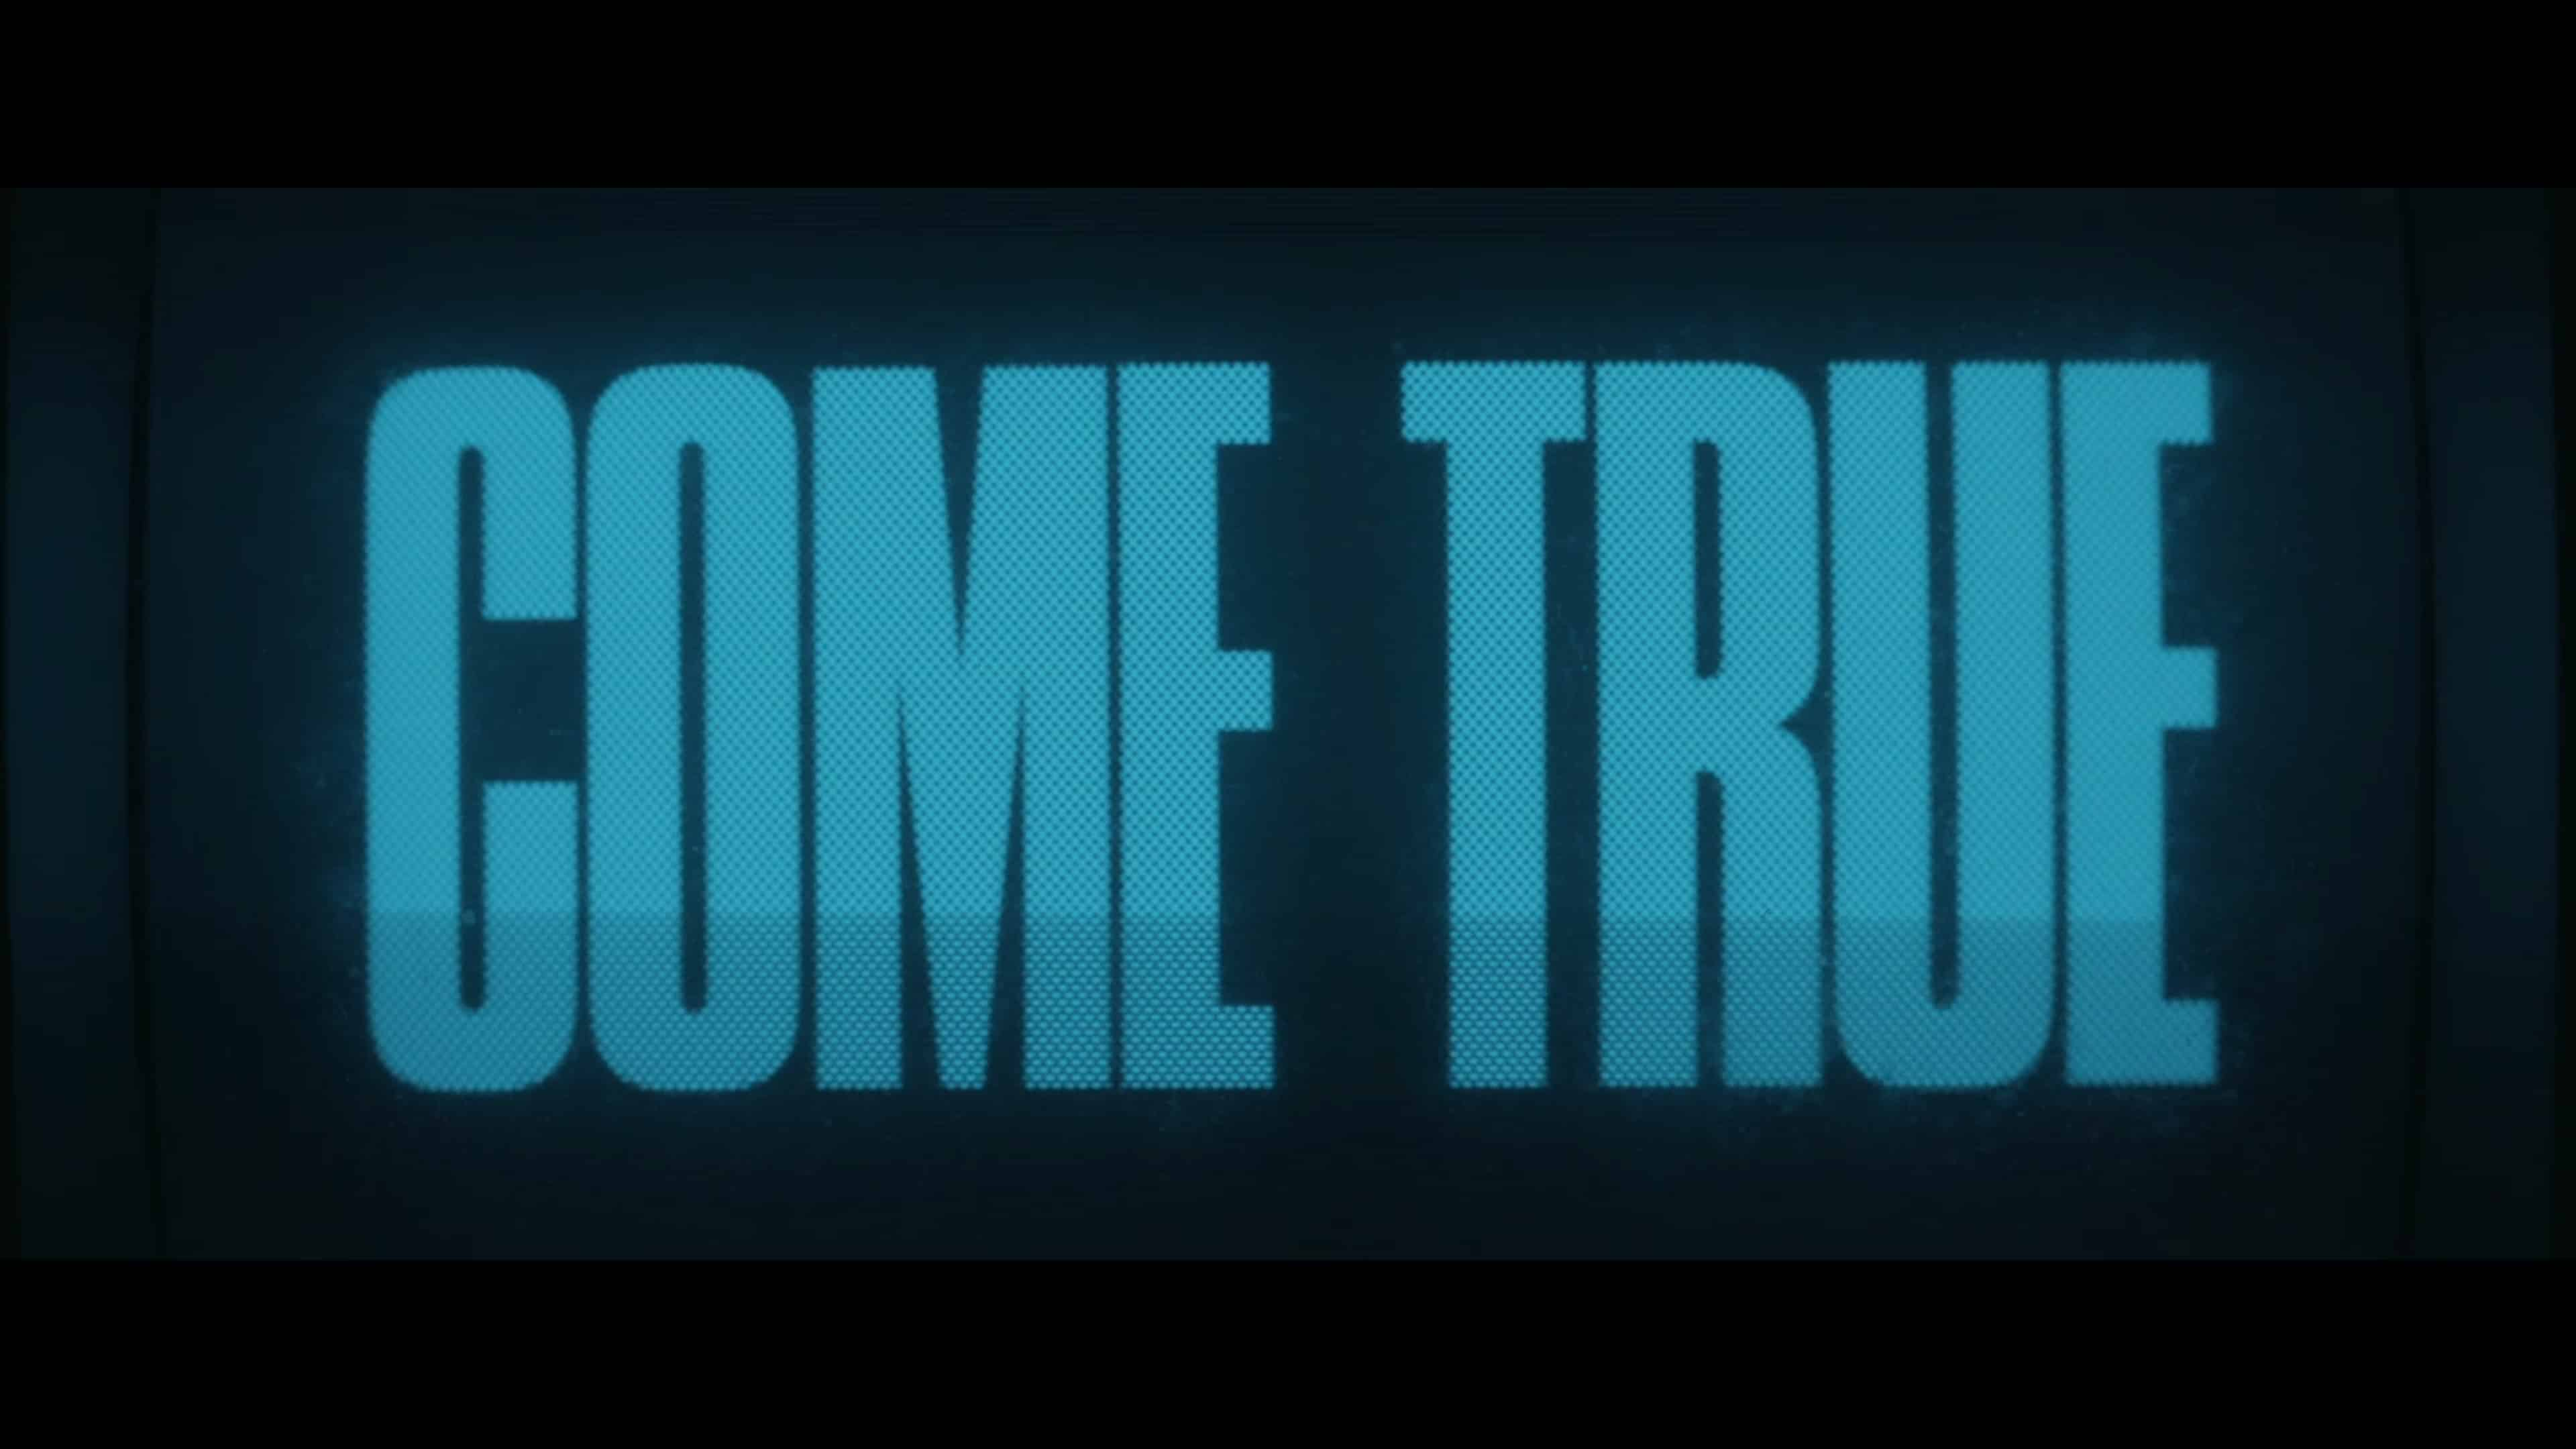 An alternate title card for the movie Come True